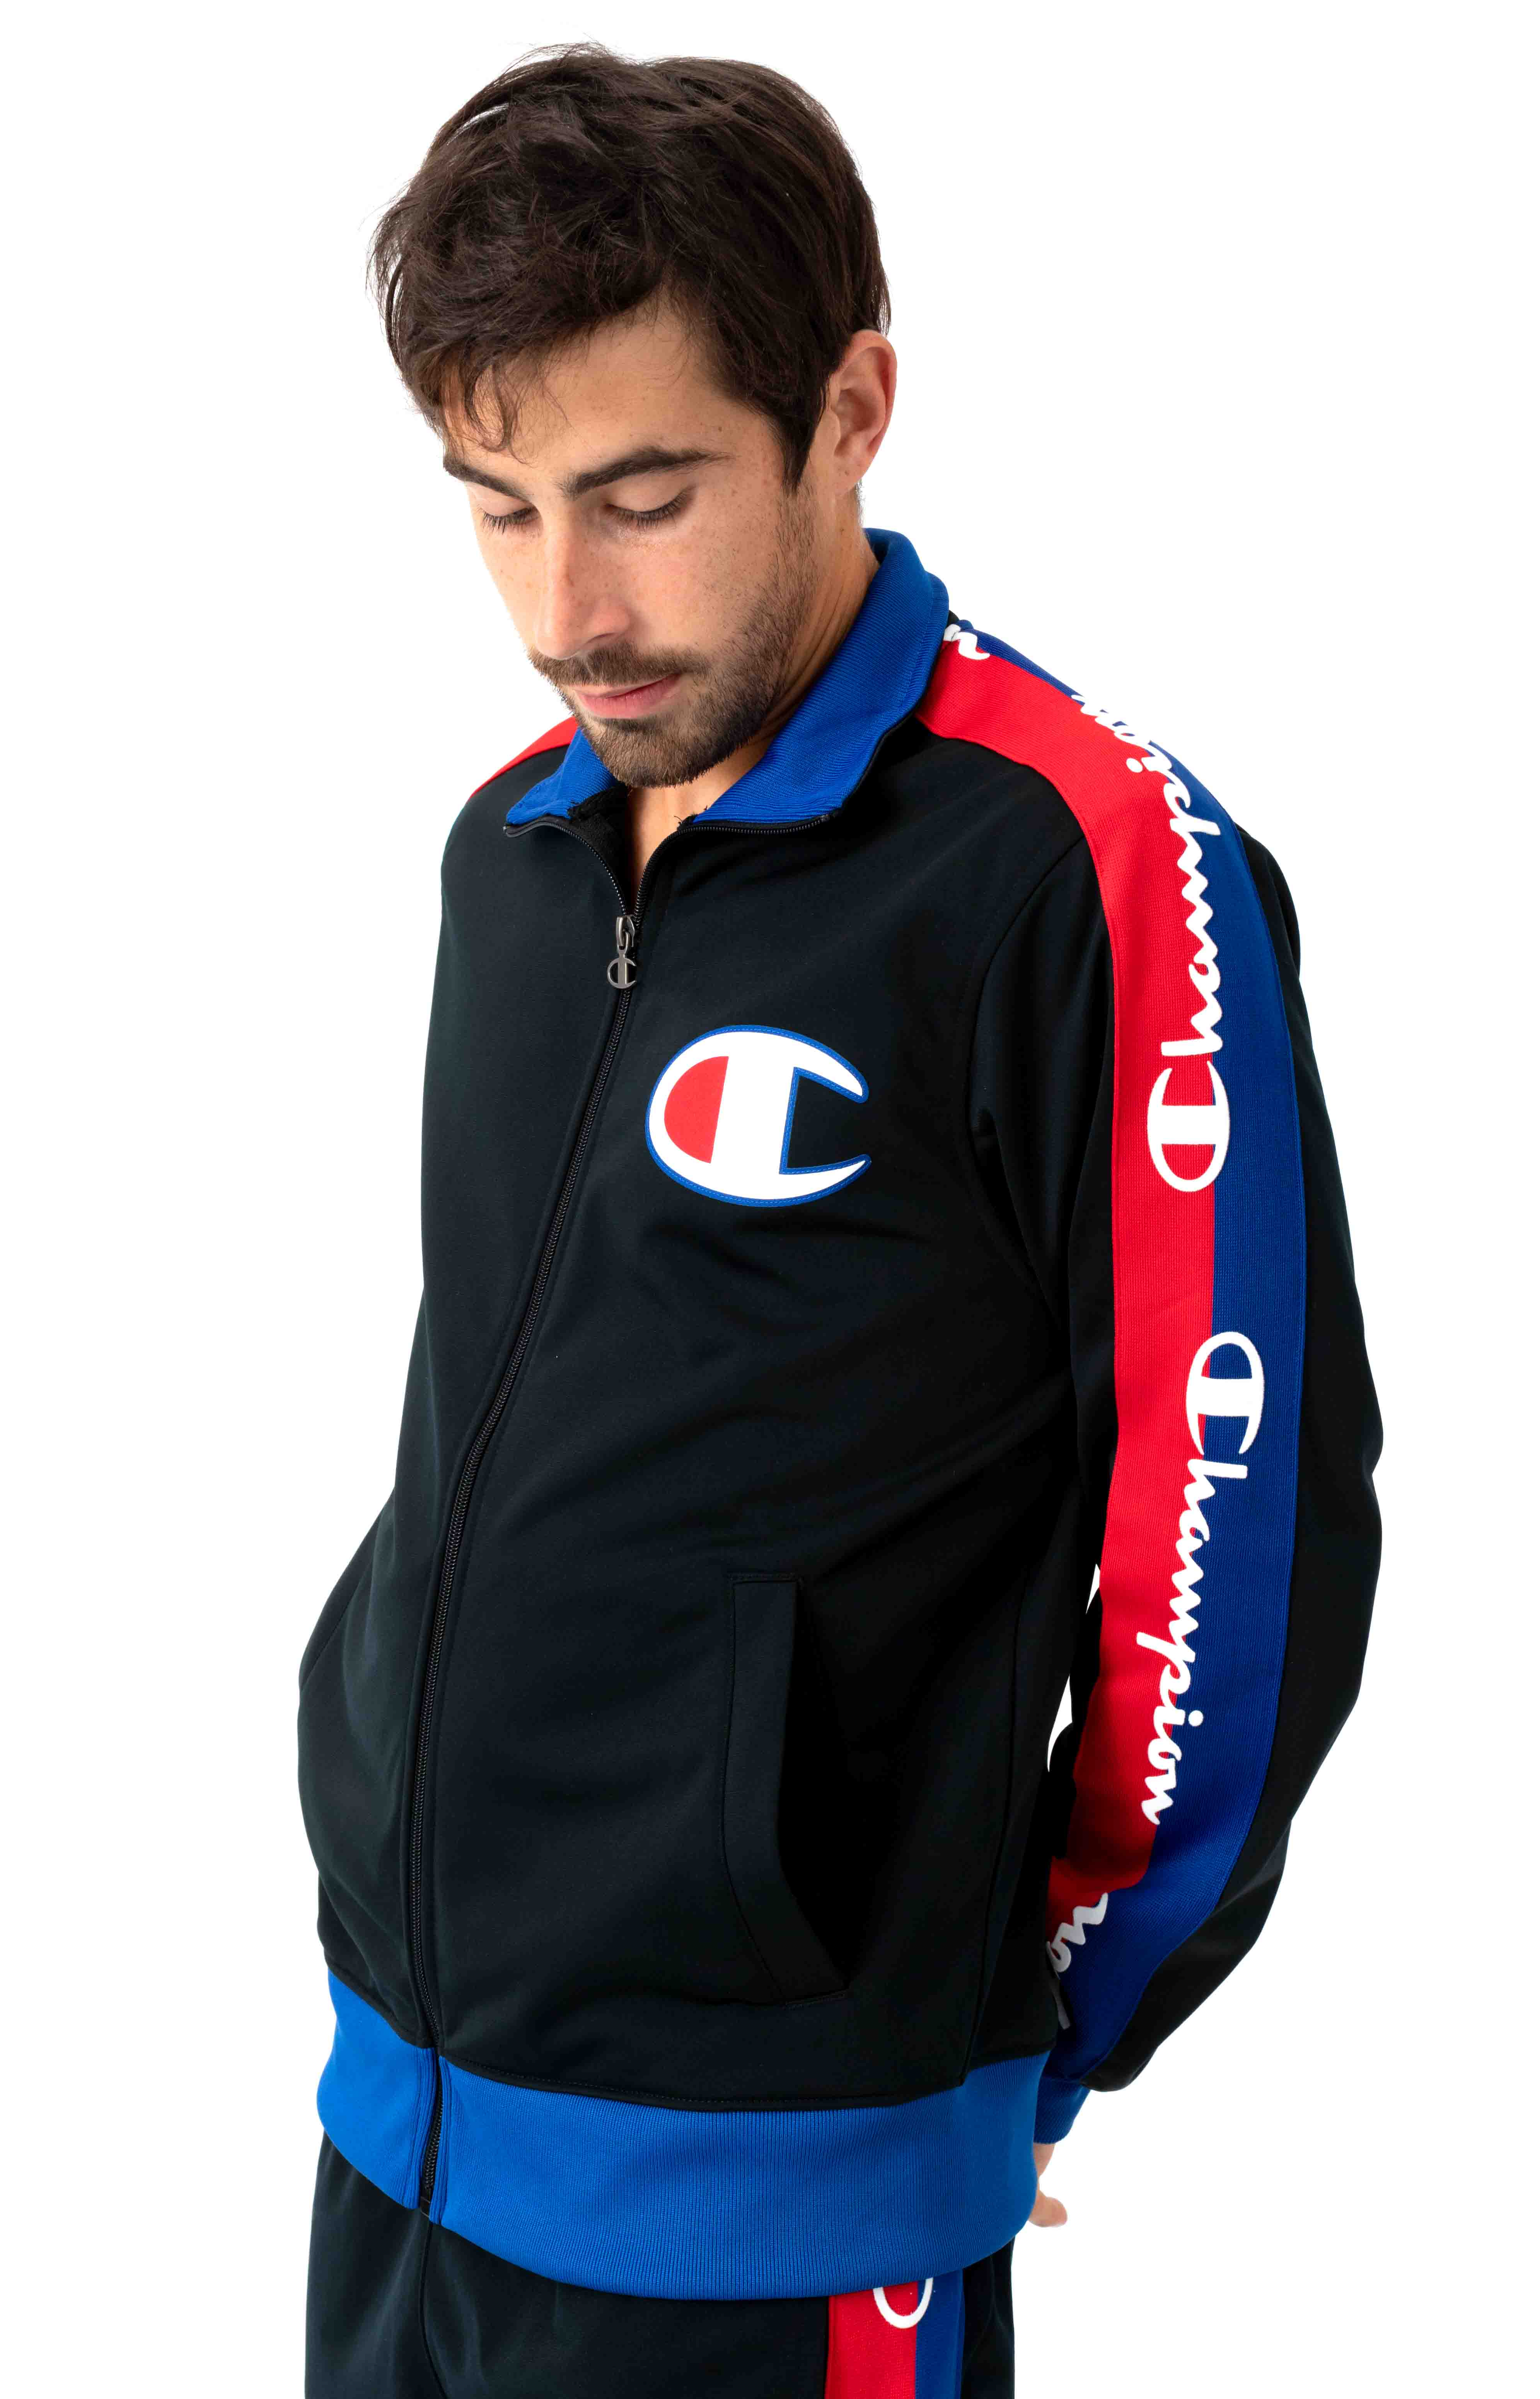 Tricot Track Jacket w/ Champion Taping - Black/Surf The Web 2